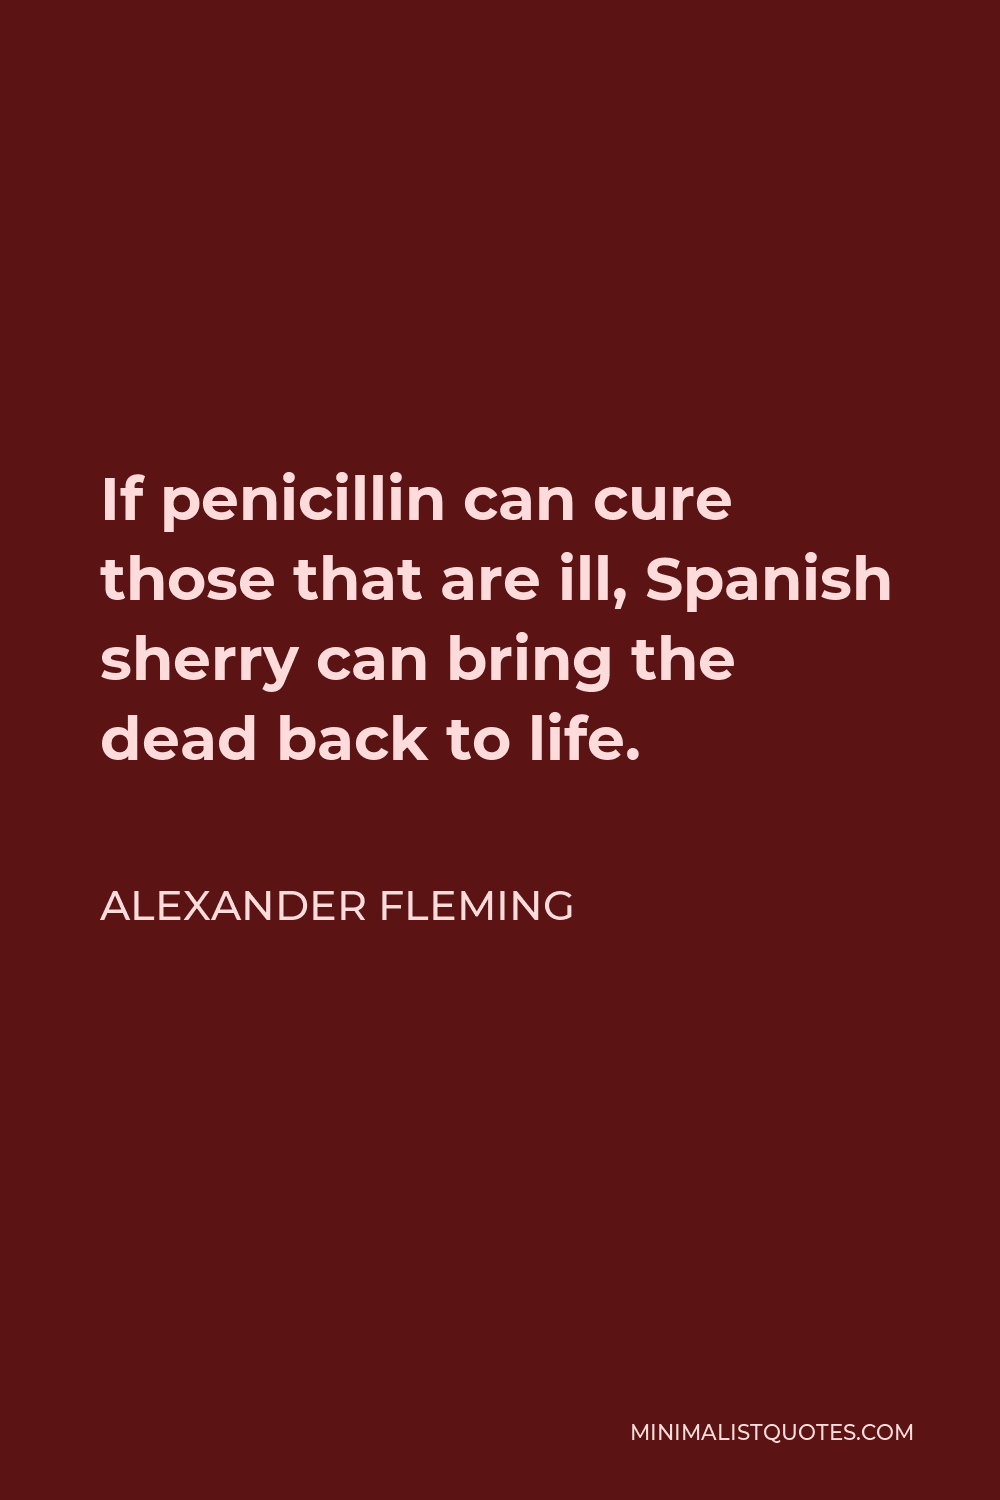 Alexander Fleming Quote - If penicillin can cure those that are ill, Spanish sherry can bring the dead back to life.